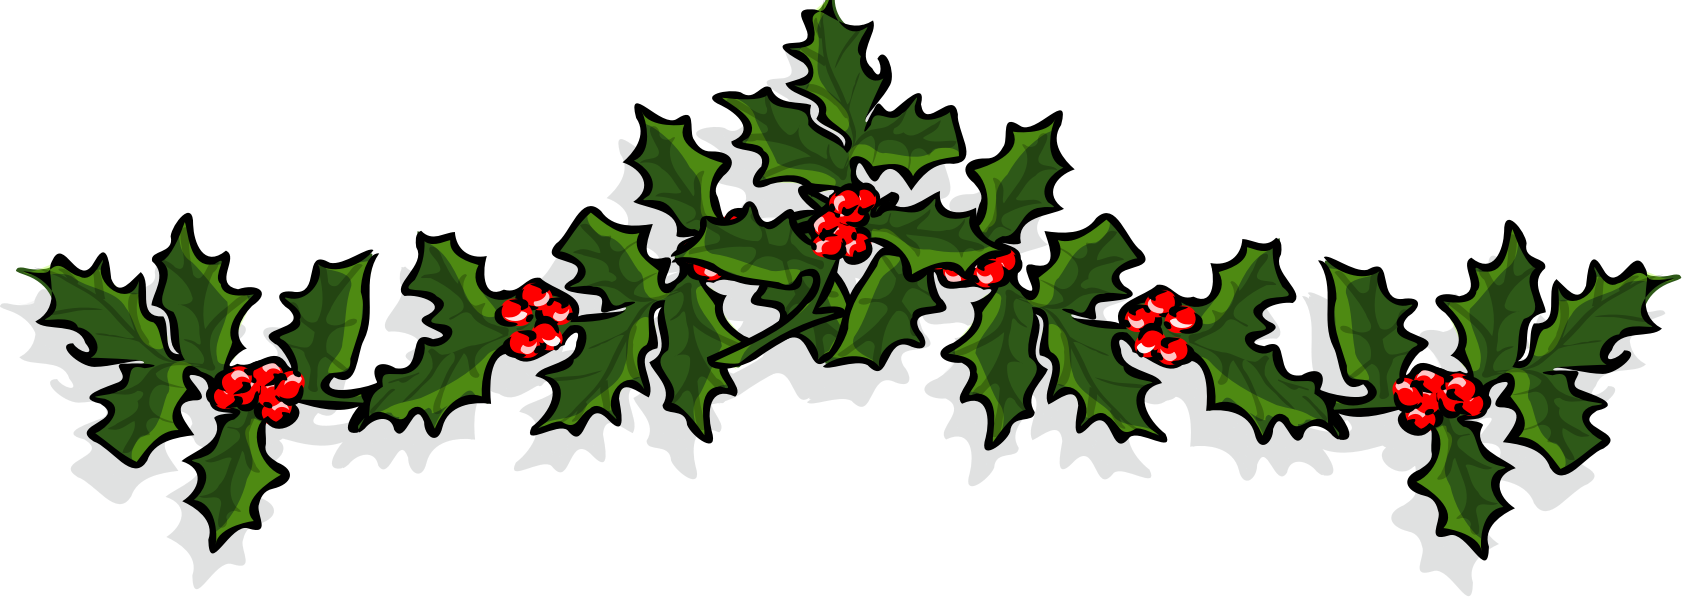 Holiday png images. Holly icons free and